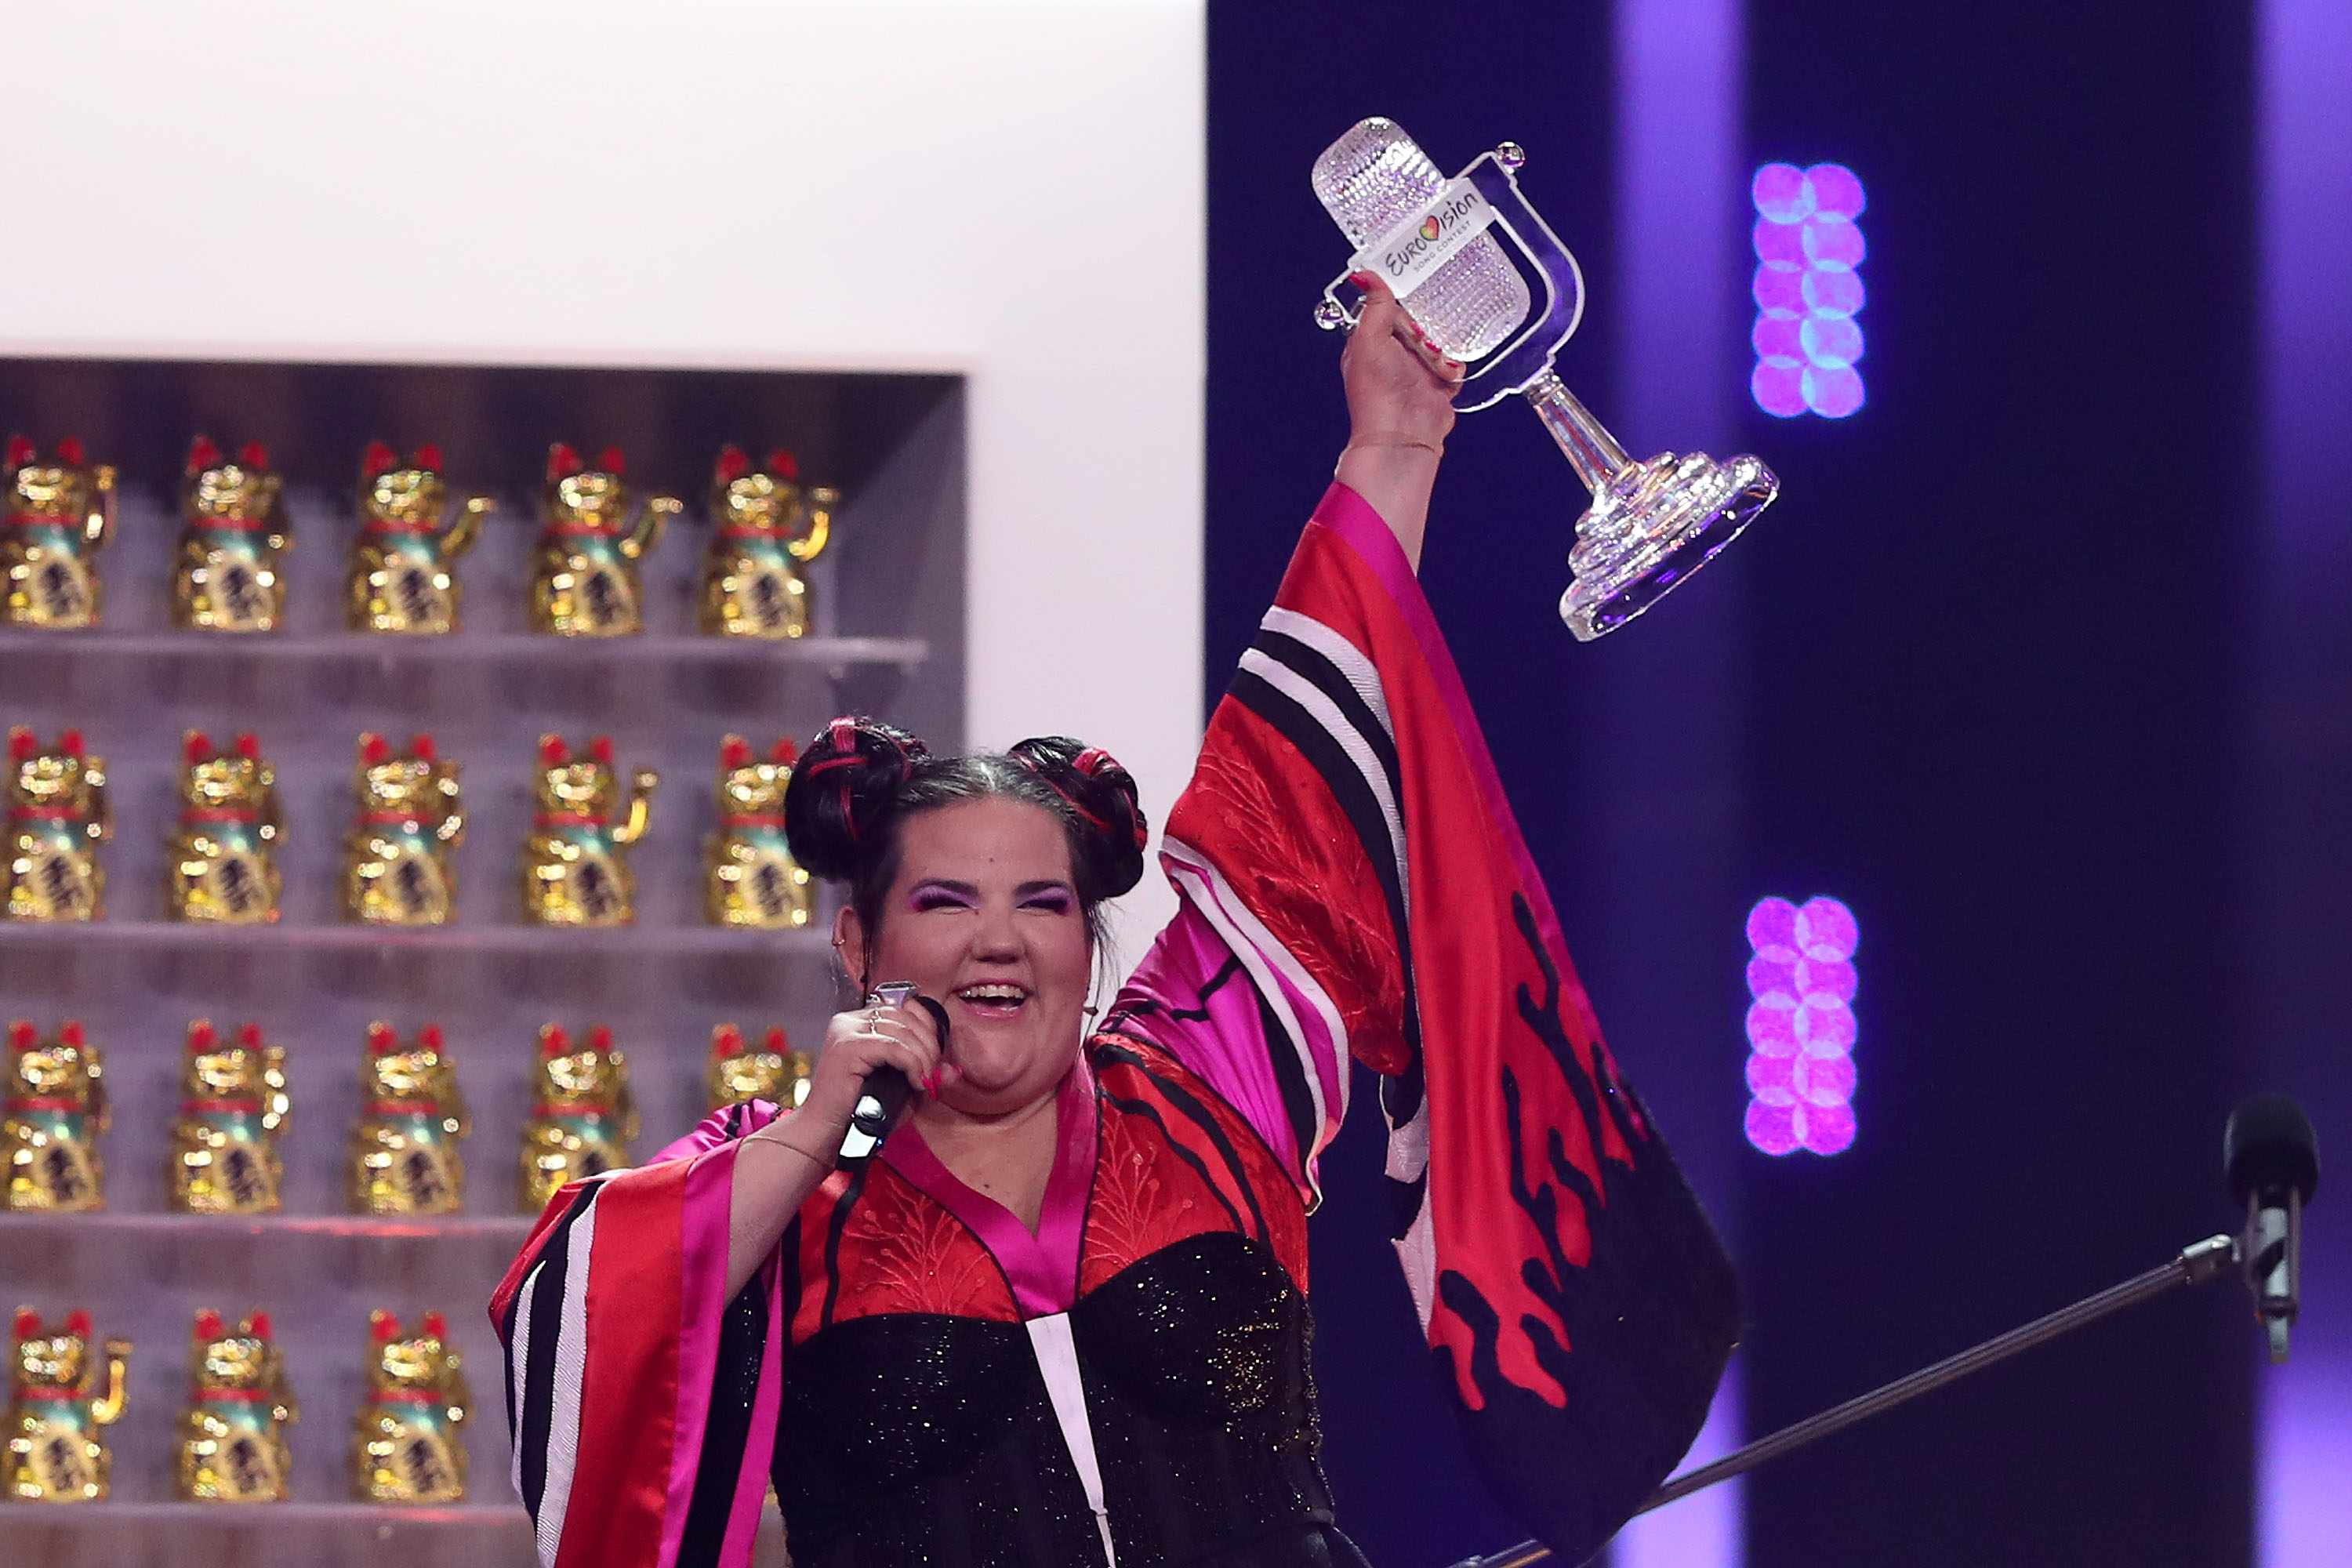 Netta of Israel raises the Trophy after winning the 2018 Eurovision Song Contest Grand Final, at the Altice Arena in Lisbon, Portugal on May 12, 2018. ( Photo by Pedro Fiúza/NurPhoto via Getty Images)